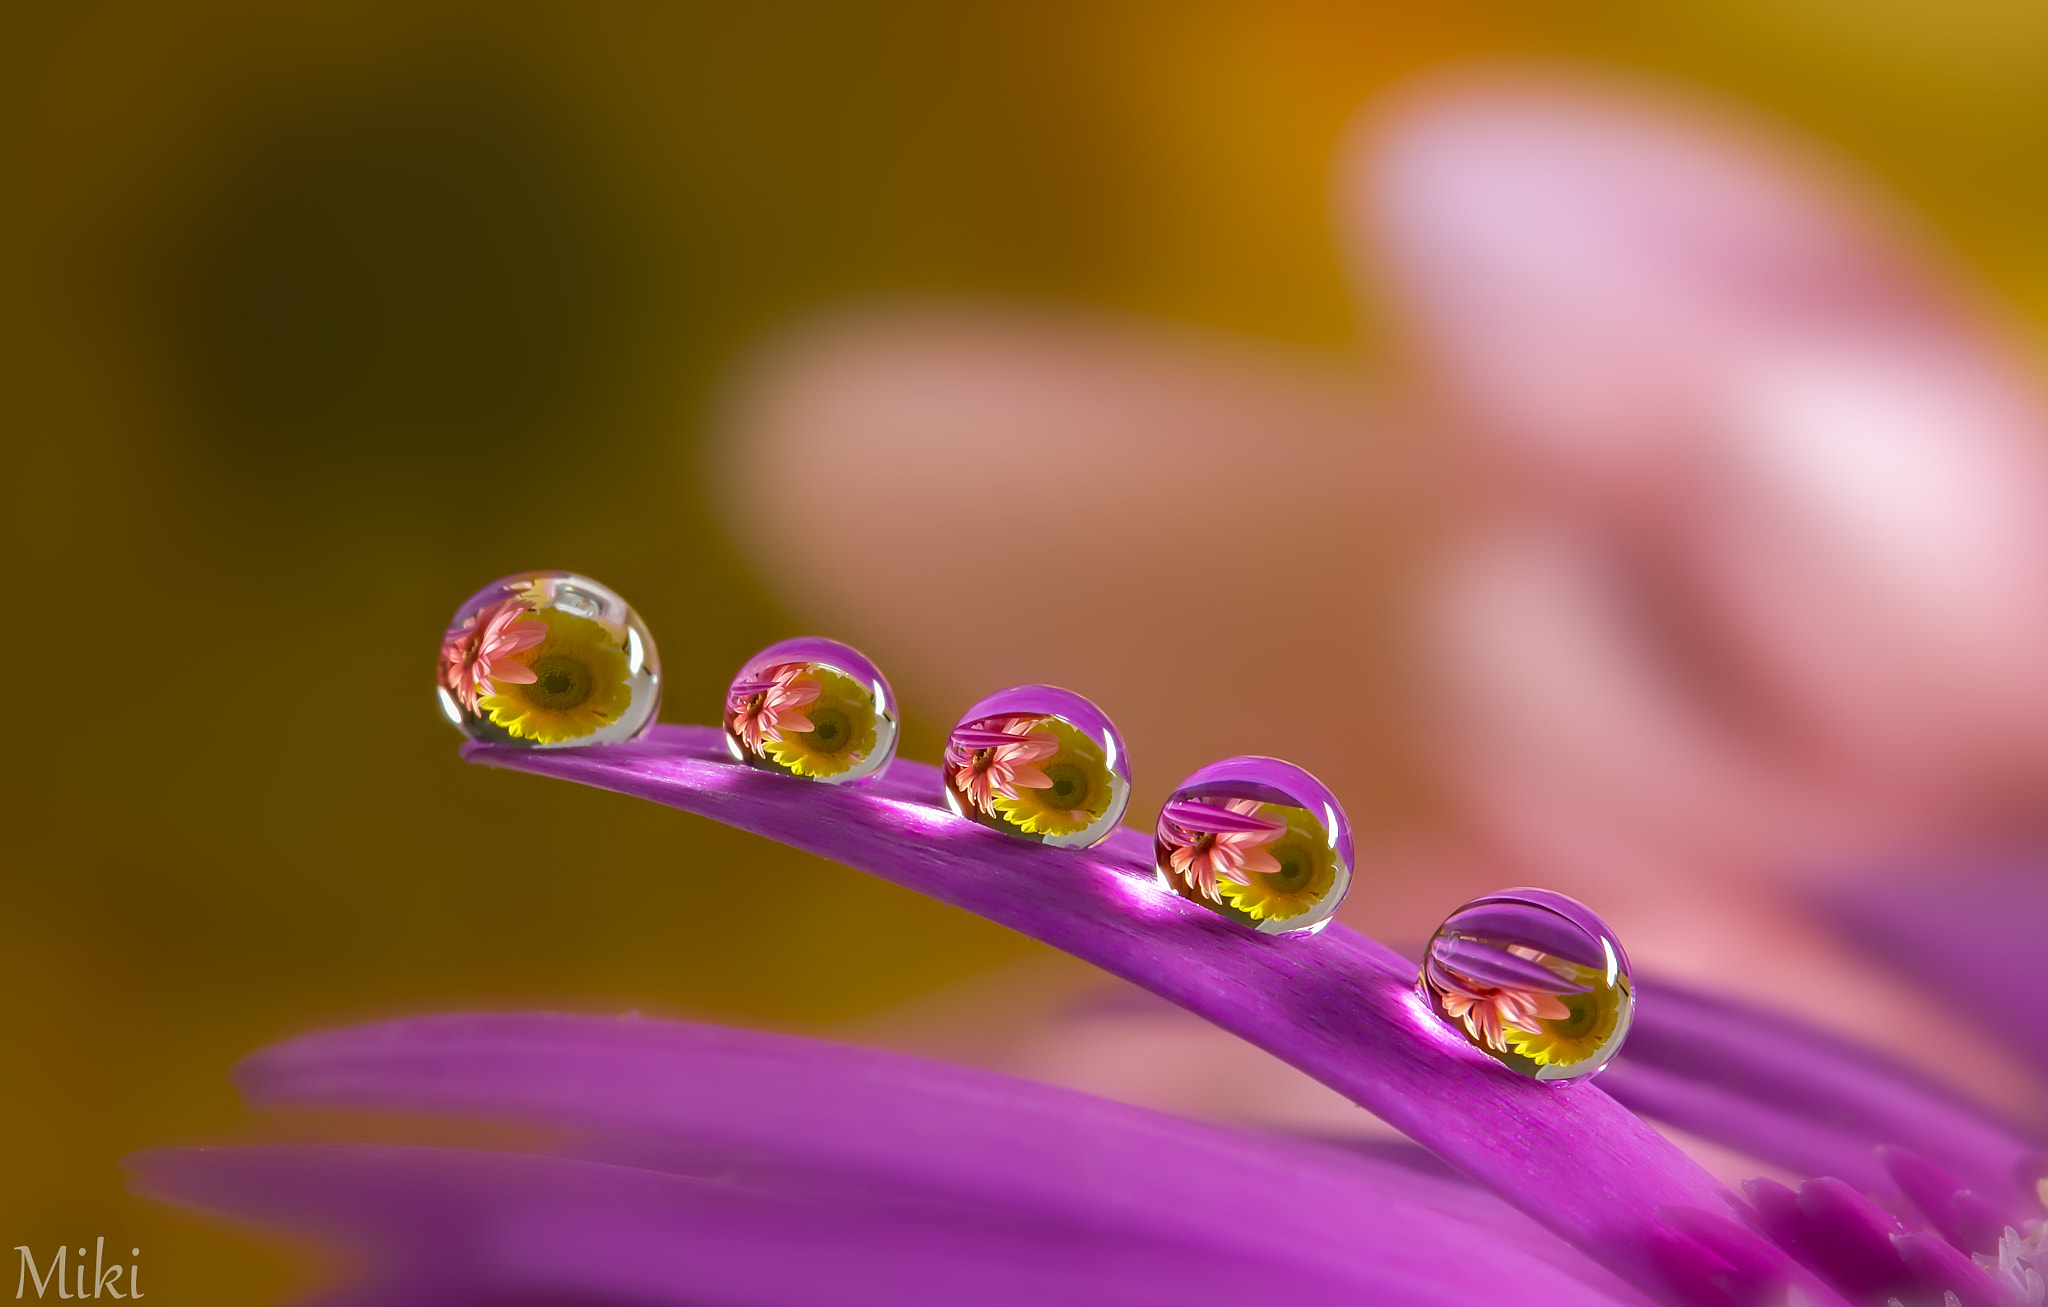 Photograph Five Star by Miki Asai on 500px